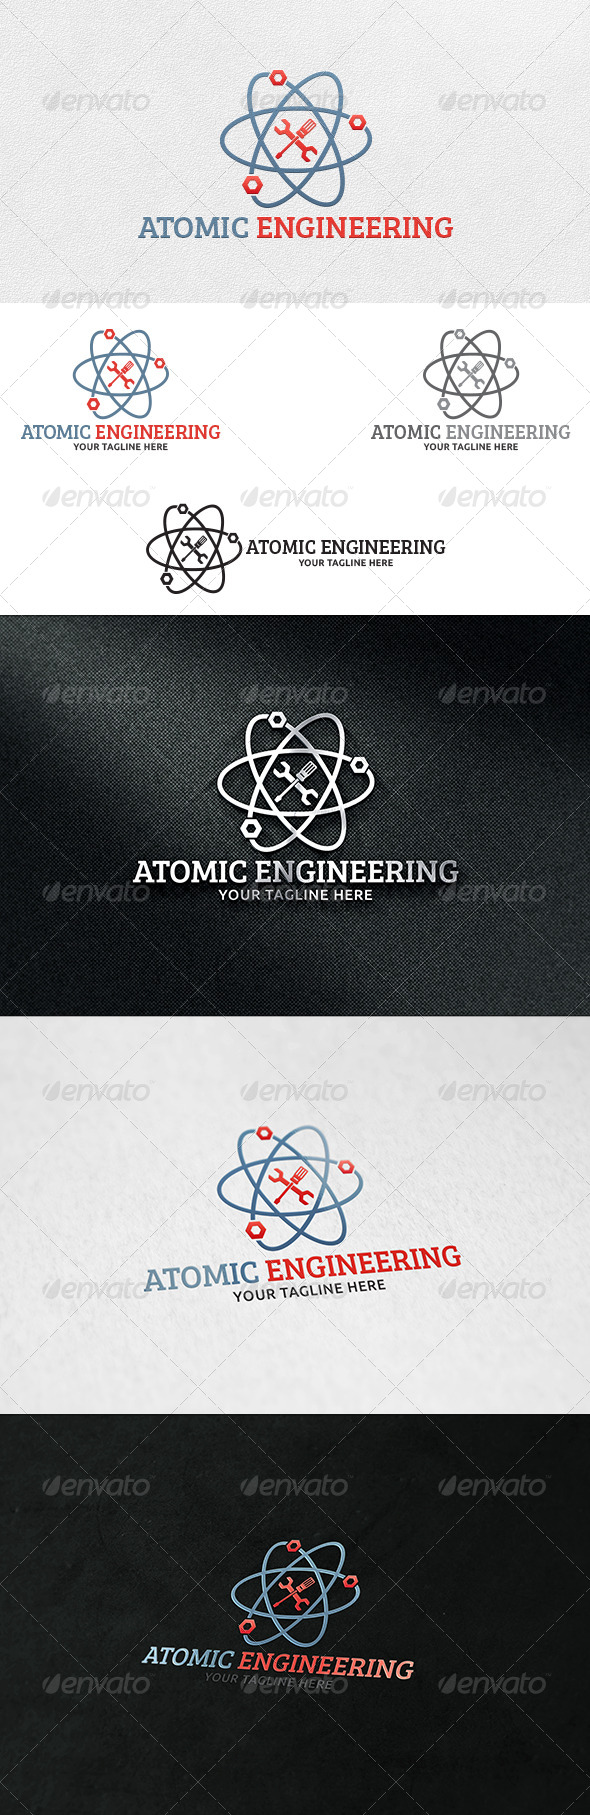 Atomic Engineering - Logo Template - Symbols Logo Templates